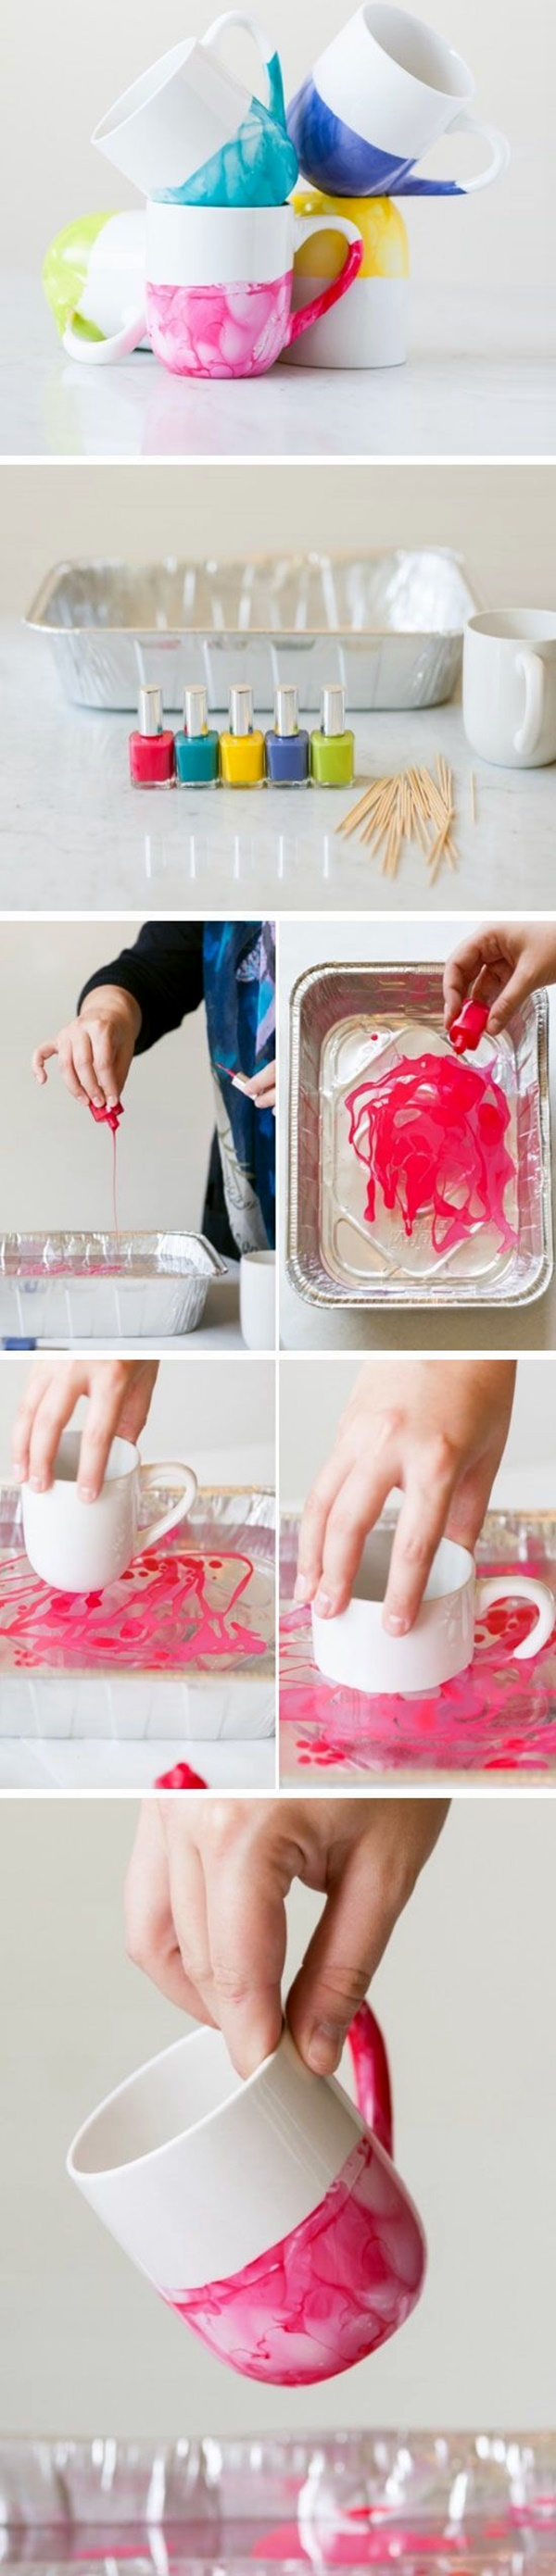 Quick and So Useful DIY's to Learn (18)